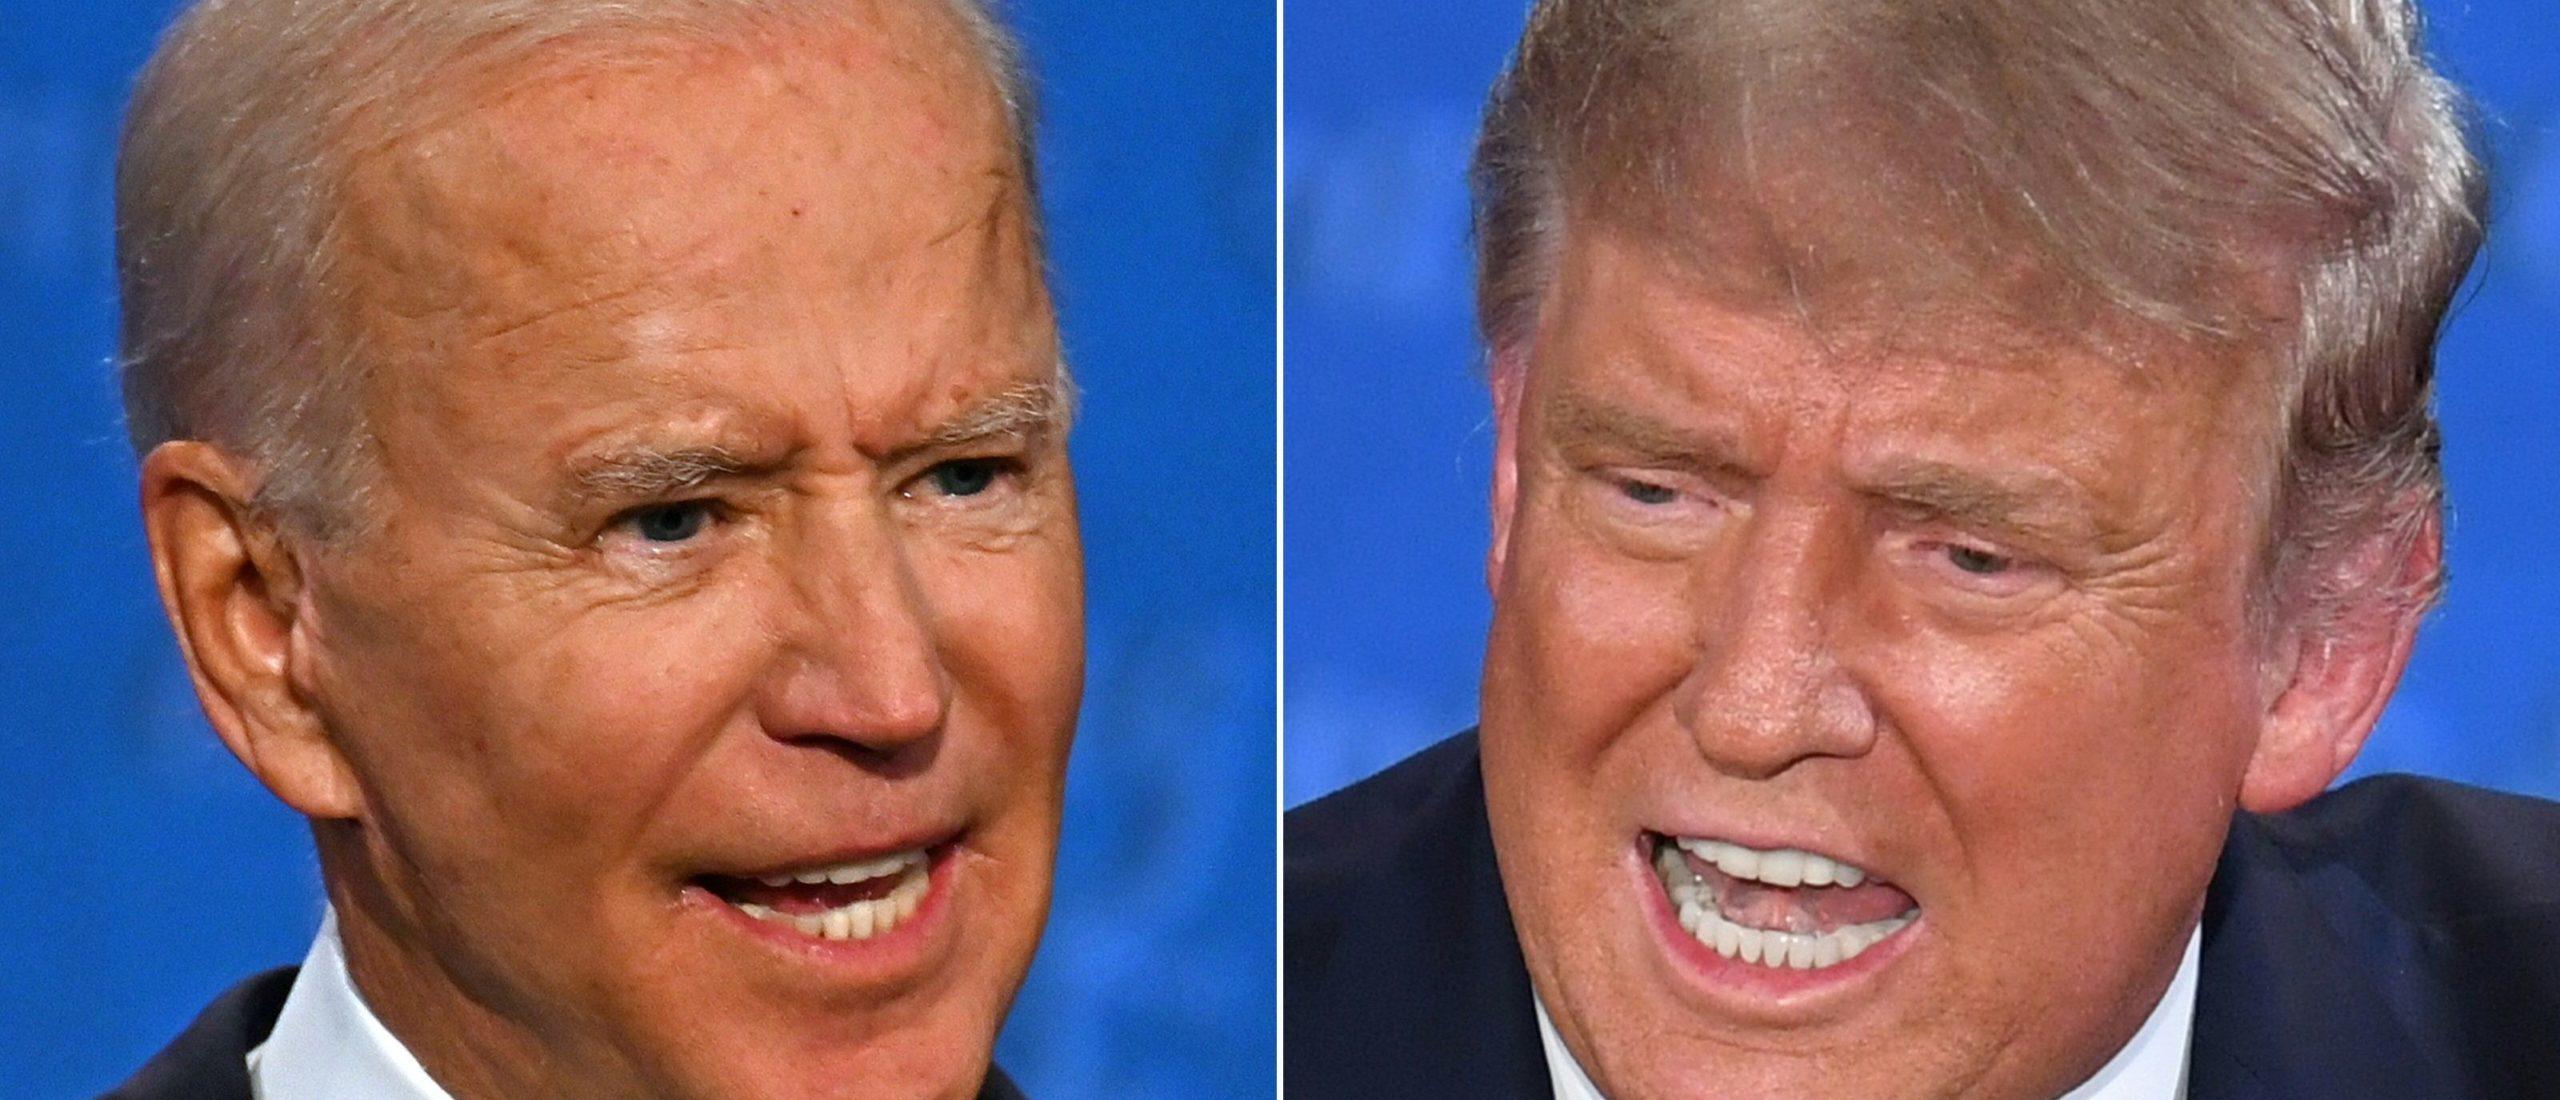 This combination of pictures created on September 29, 2020 shows Democratic Presidential candidate and former US Vice President Joe Biden (L) and US President Donald Trump speaking during the first presidential debate at the Case Western Reserve University and Cleveland Clinic in Cleveland, Ohio on September 29, 2020. (Photo by JIM WATSON,SAUL LOEB/AFP via Getty Images)